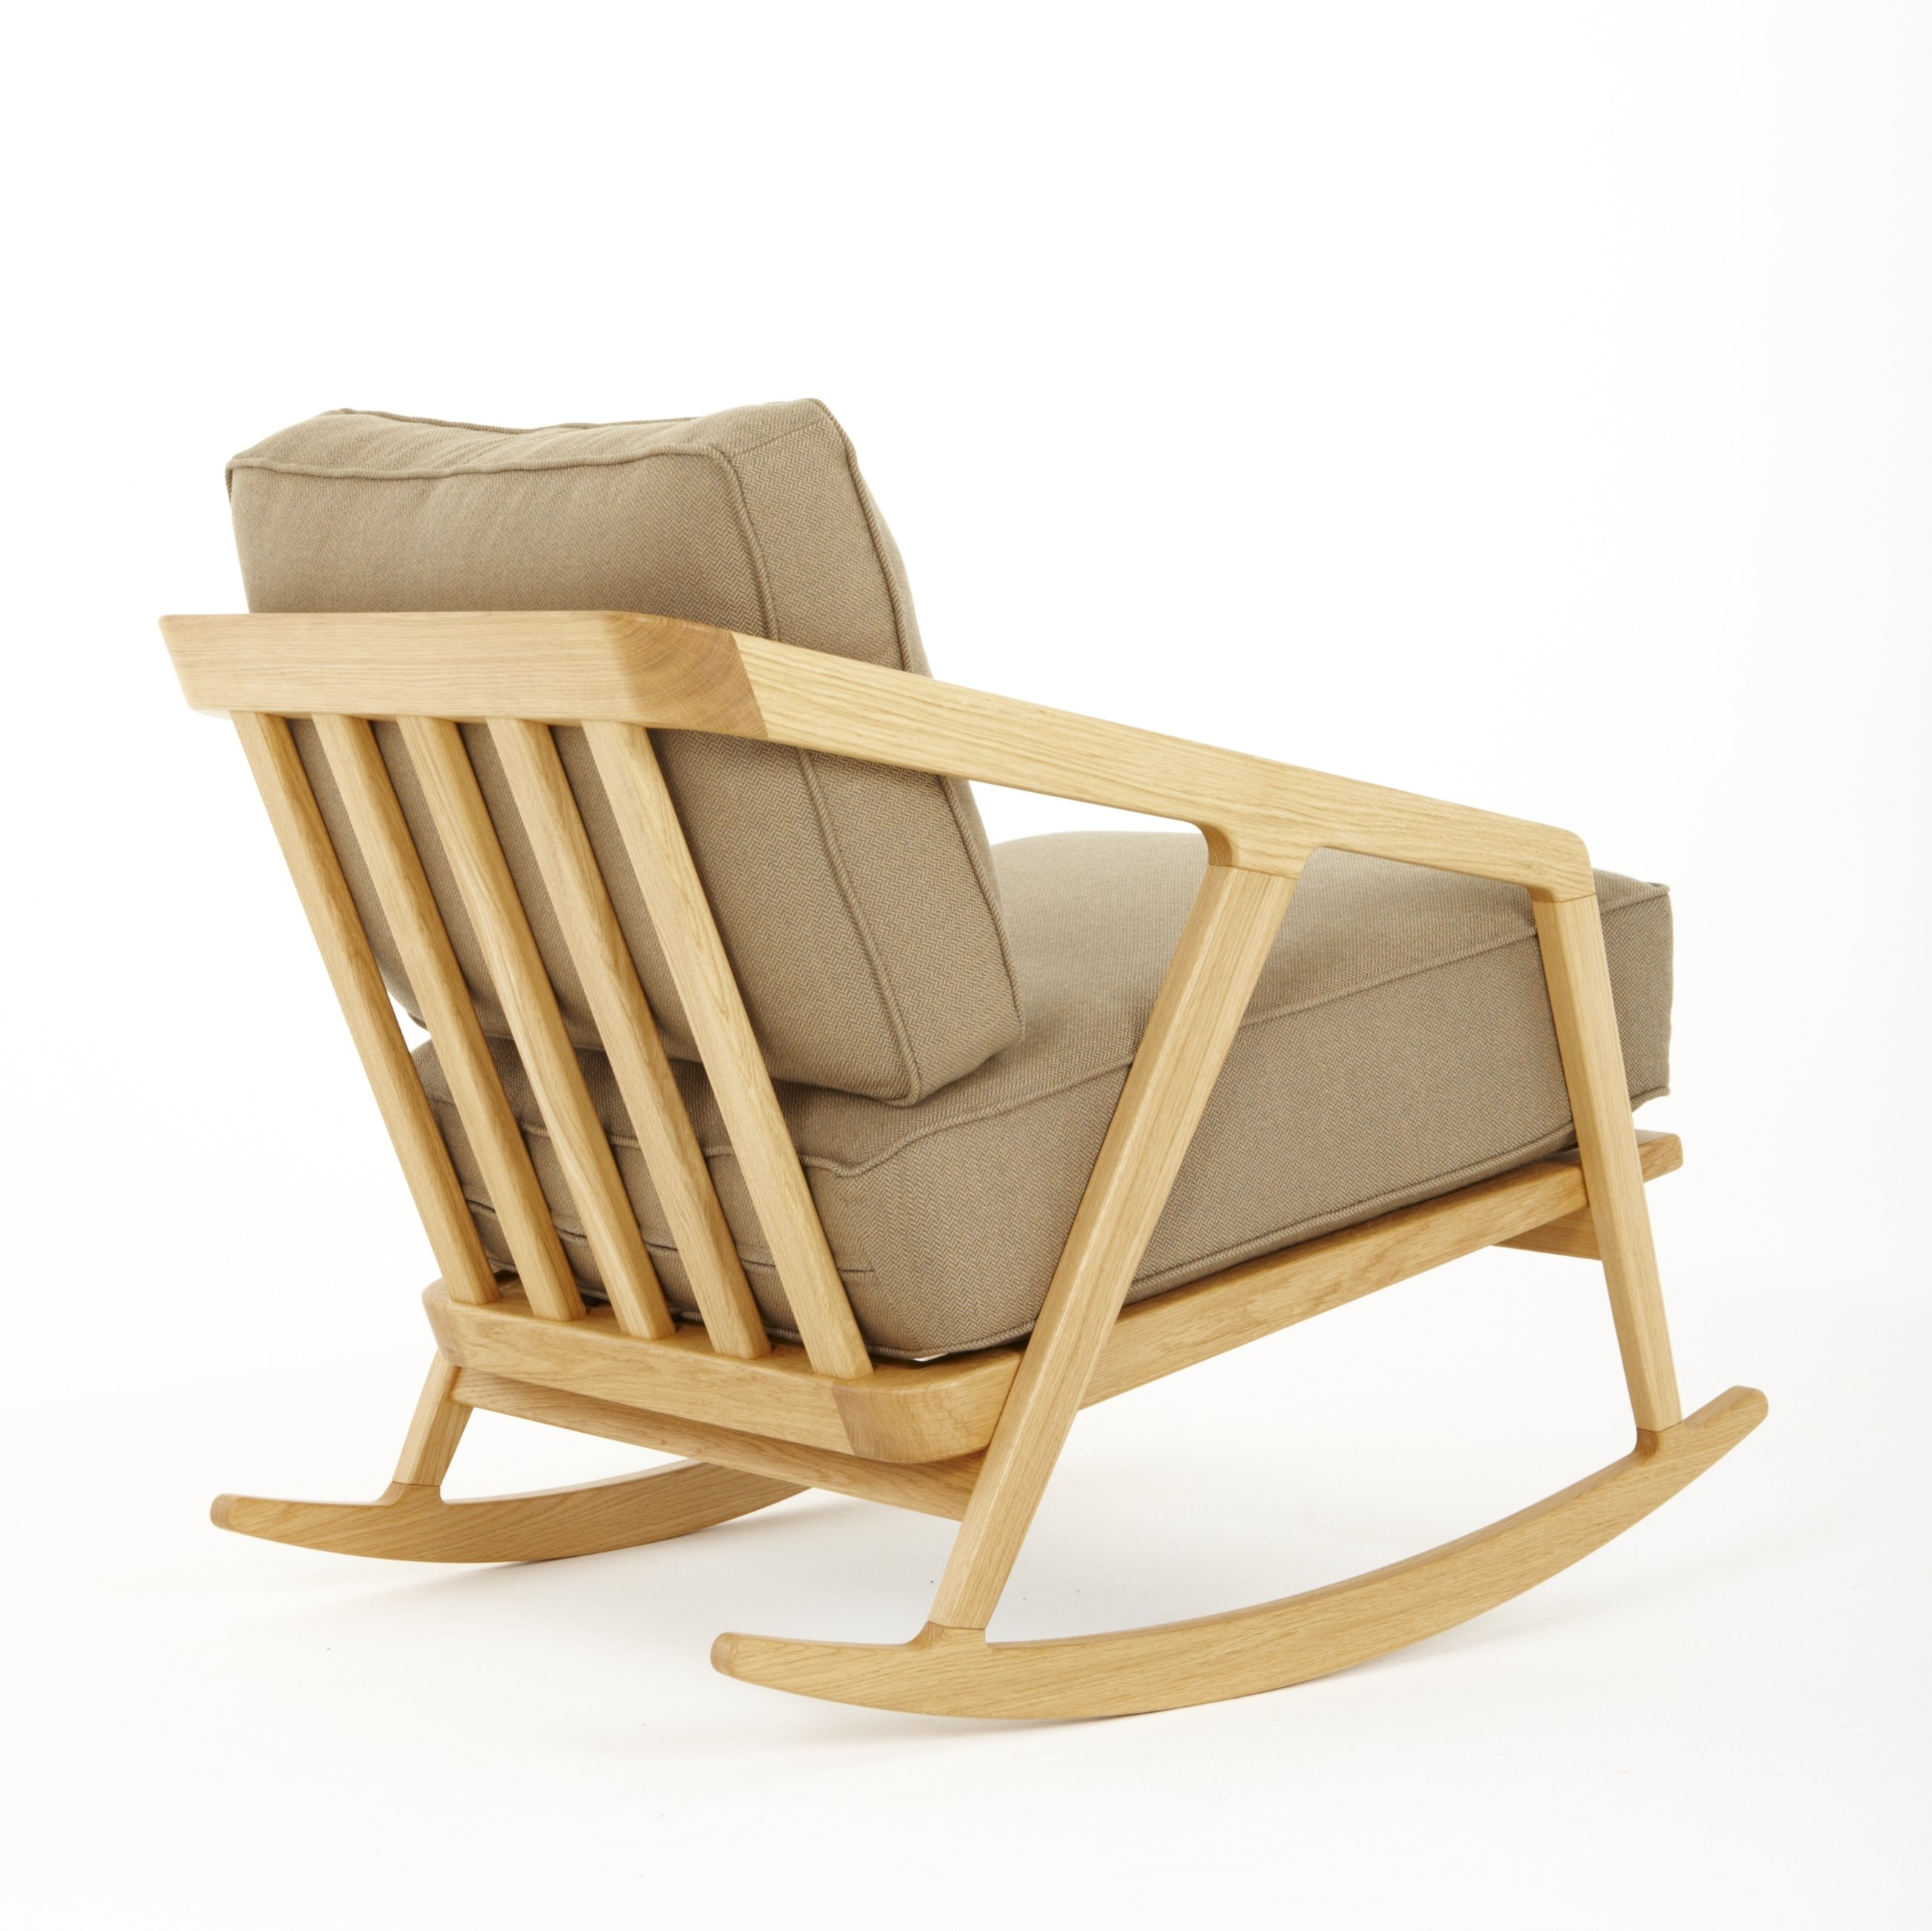 Katakana chaise bascule by dare studio design sean dare for Chaise 0 bascule